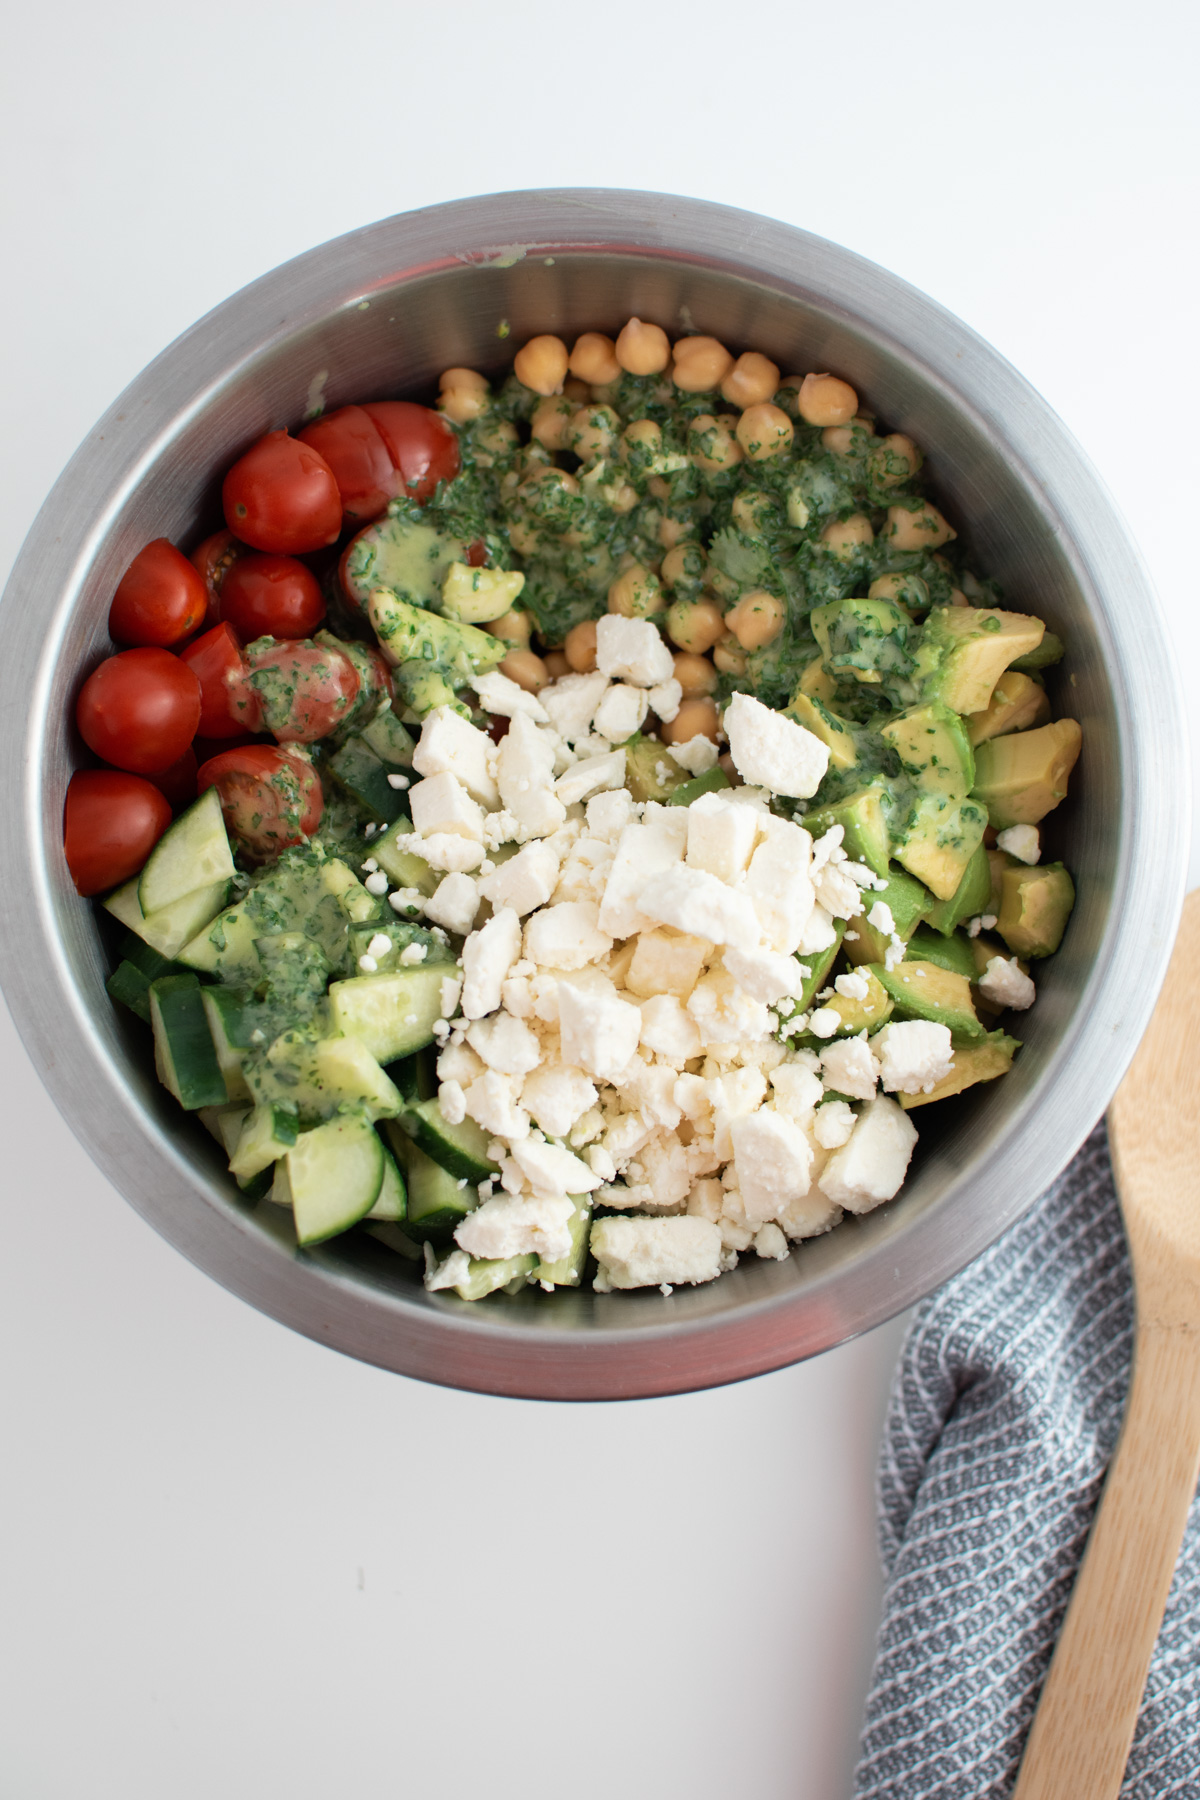 Feta cheese in chickpea salad with tomatoes, cucumber and avocado in mixing bowl.